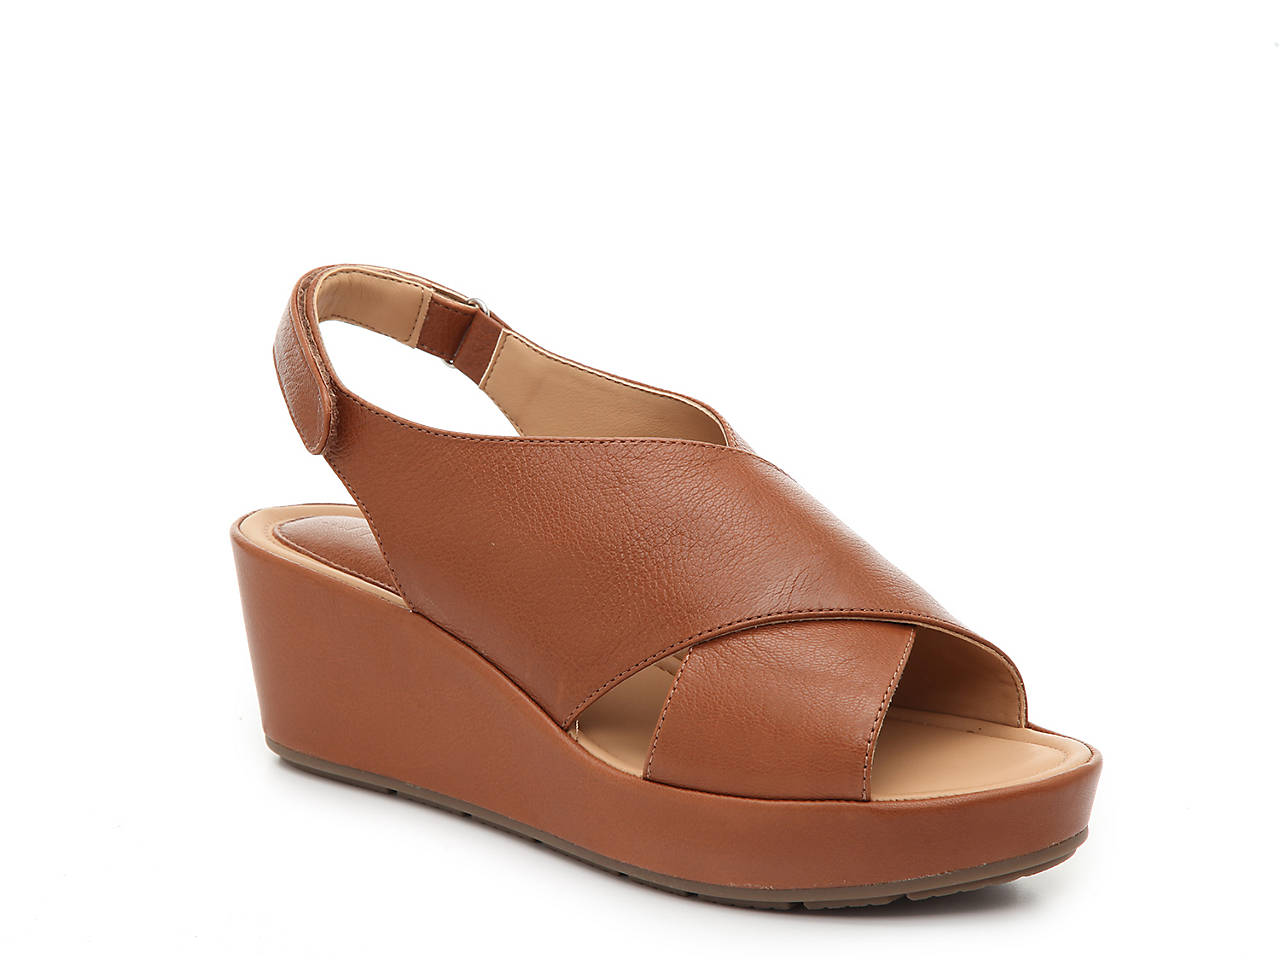 77223591d4 Me Too Arena Wedge Sandal Women s Shoes